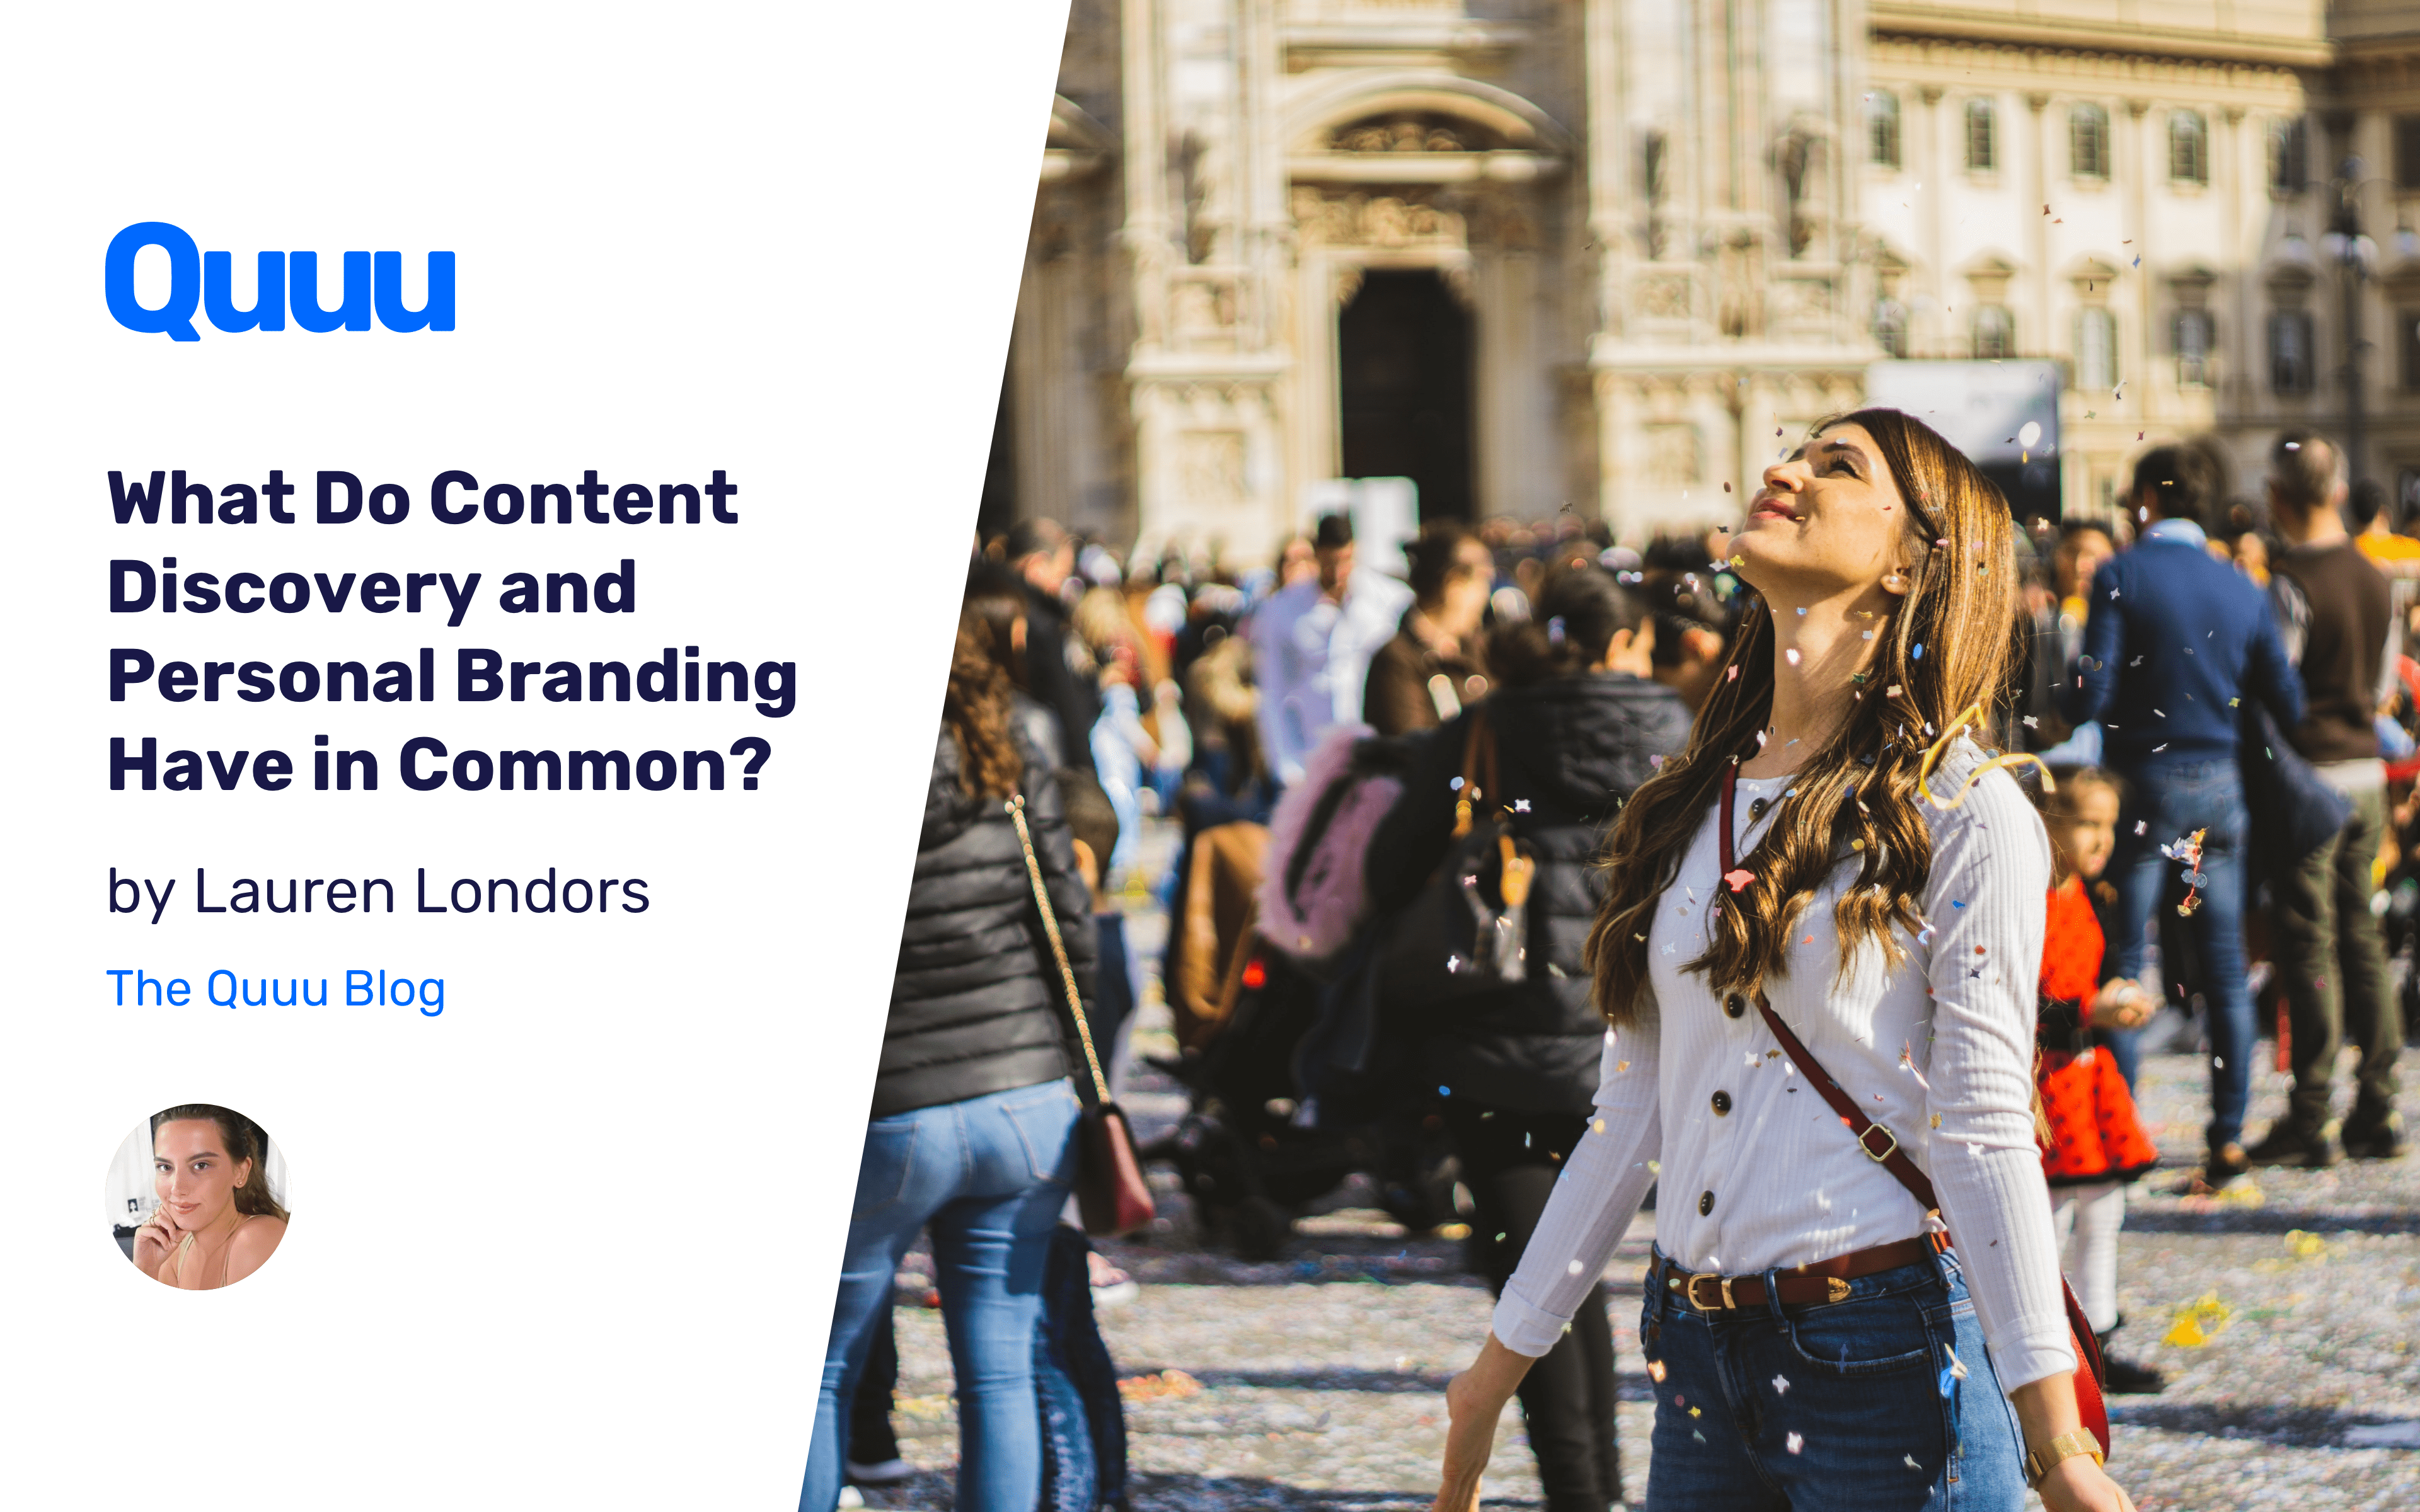 What Do Content Discovery and Personal Branding Have in Common?